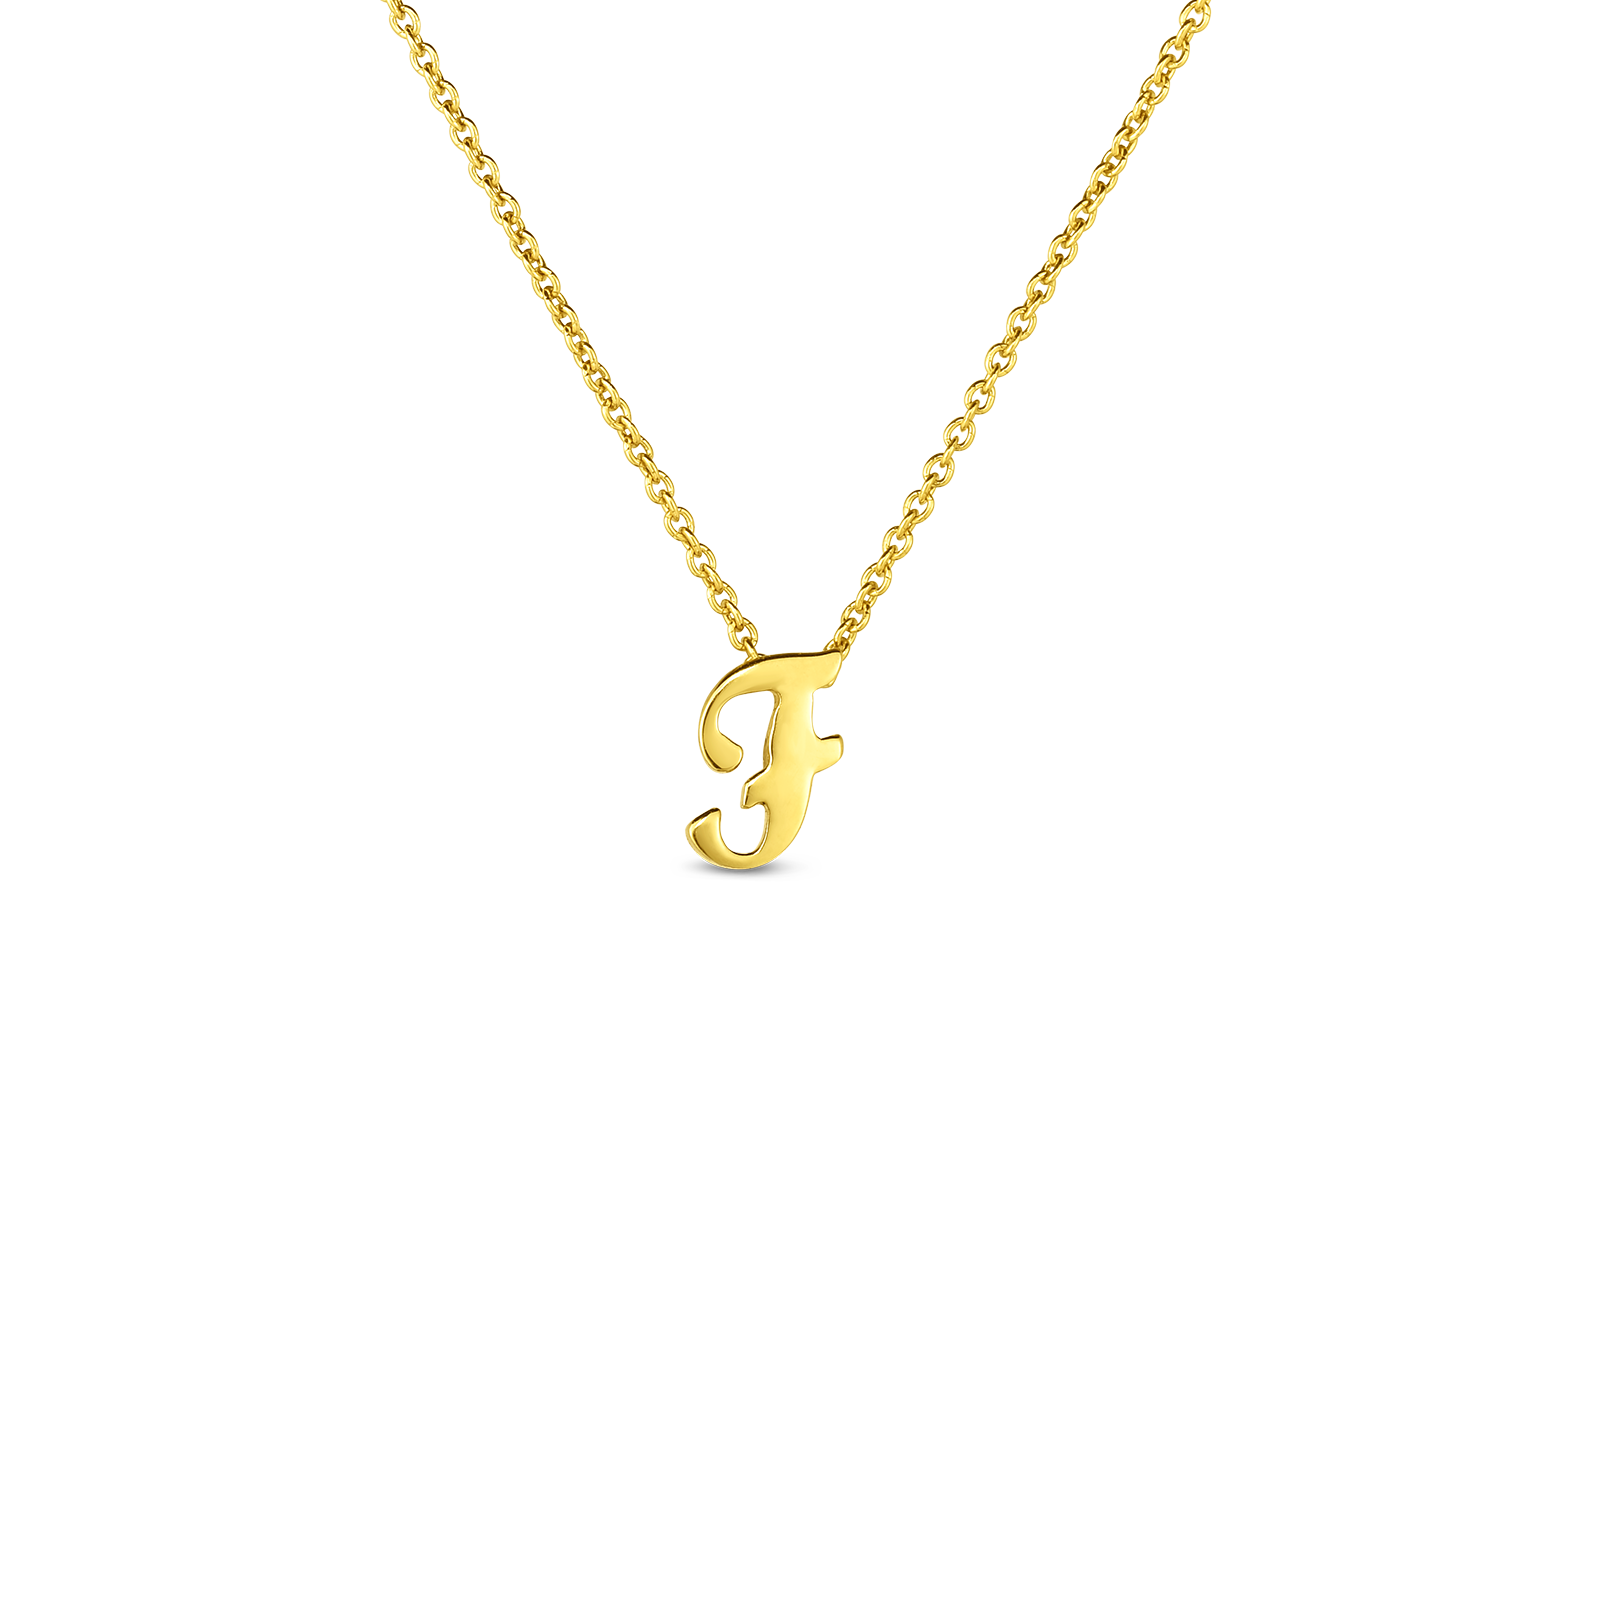 18k Small Script Initial 'F' Pendant On Chain